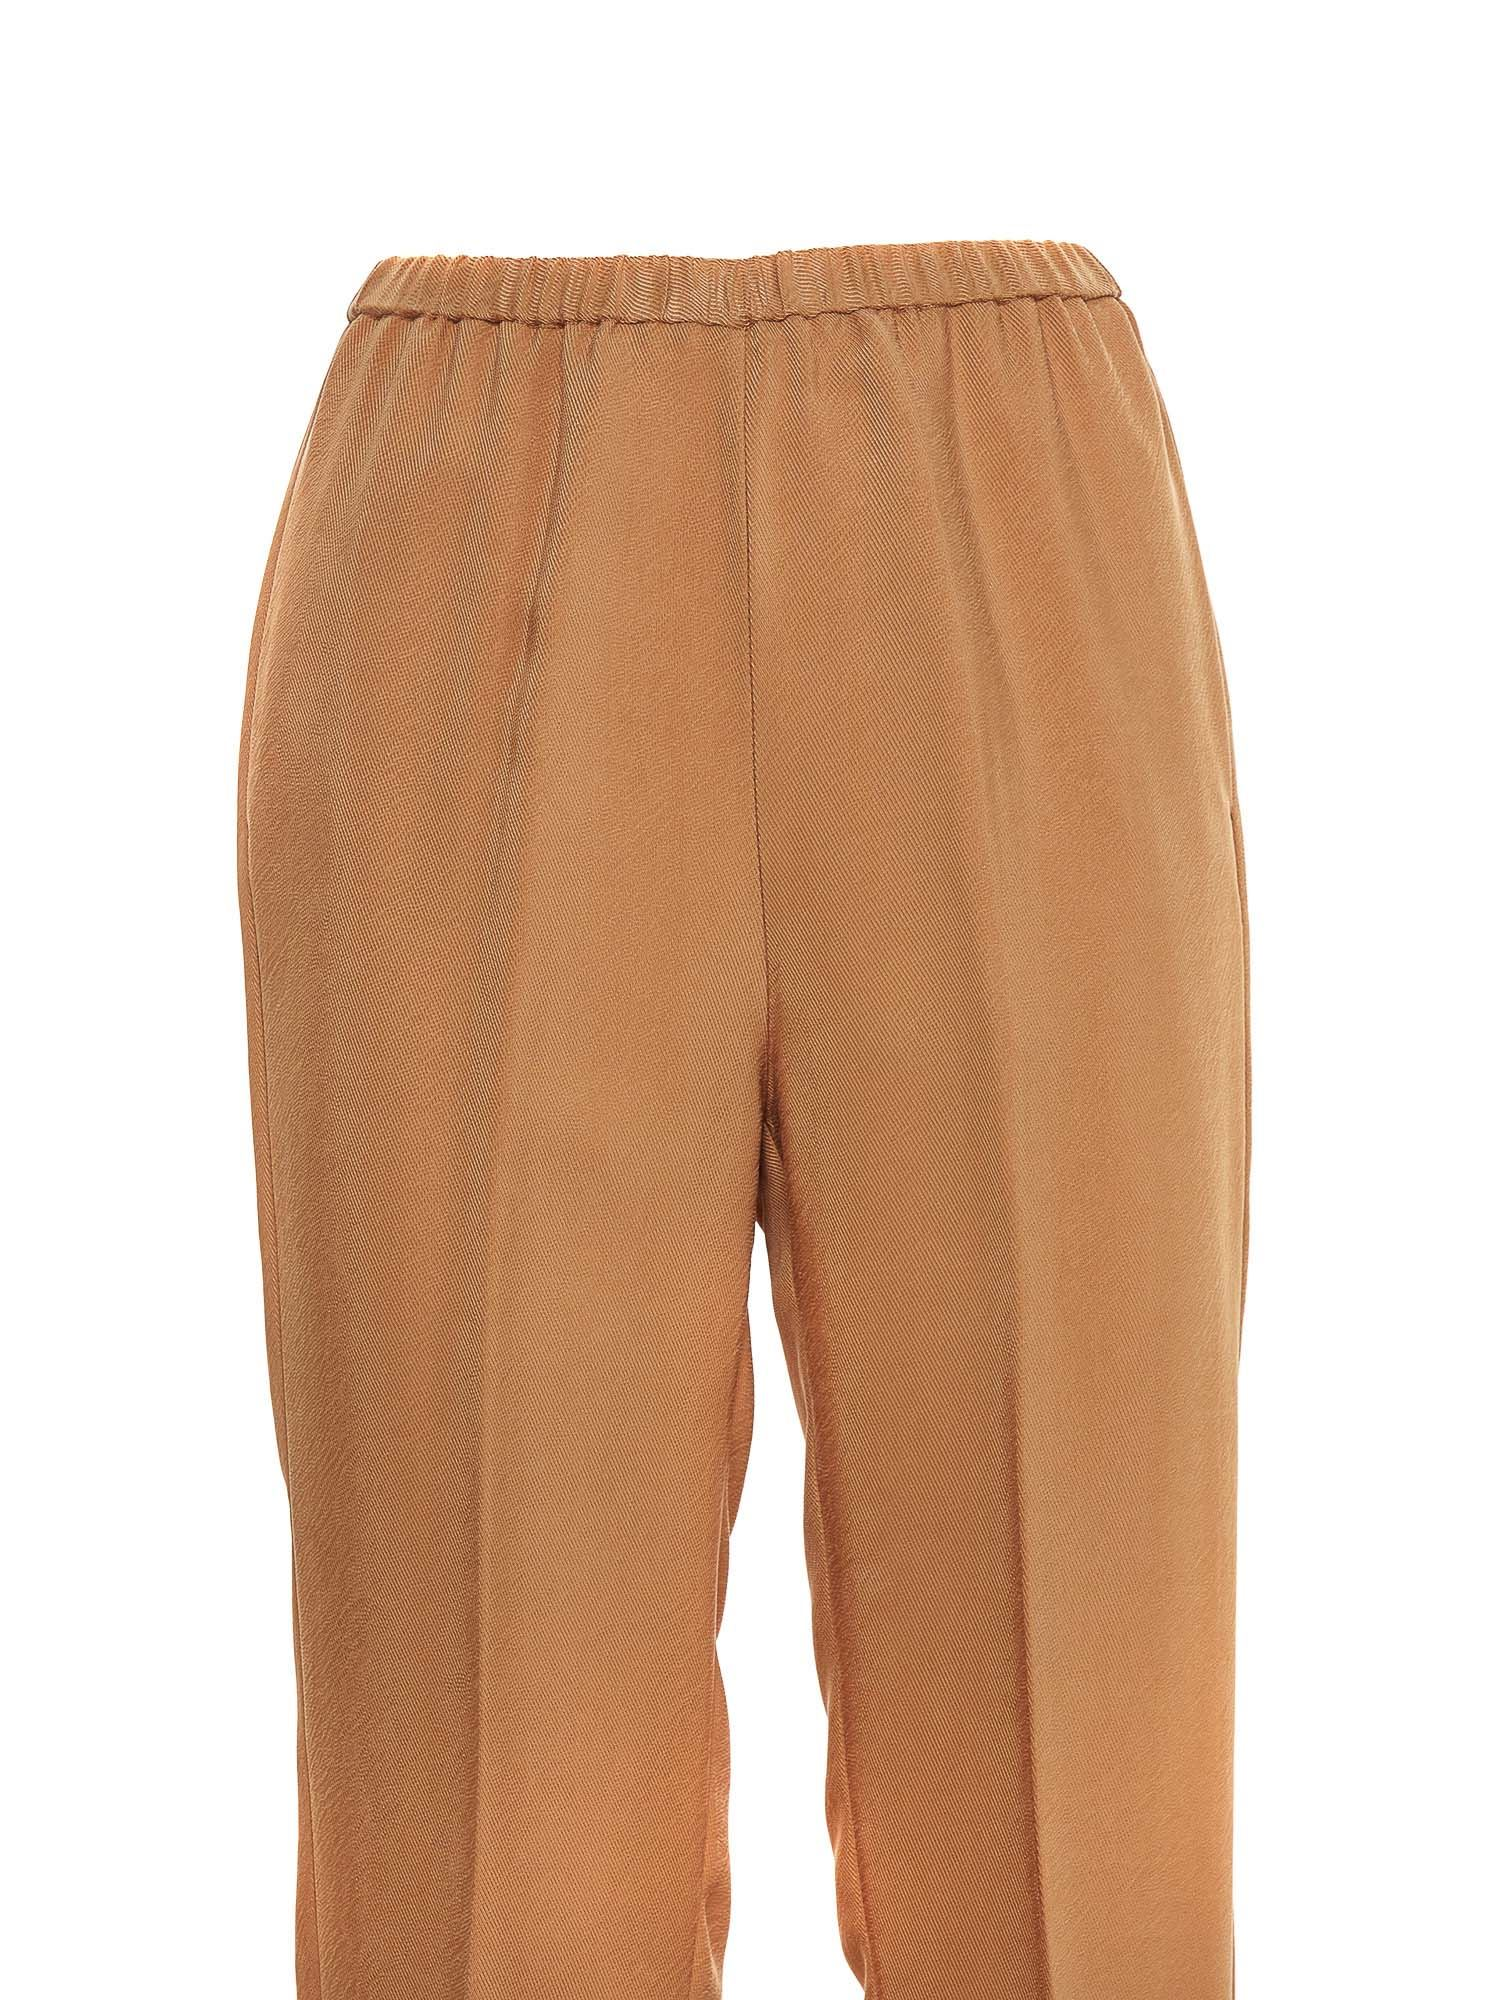 FORTE FORTE Pants ELASTICATED WAIST PANTS IN THE COLOR